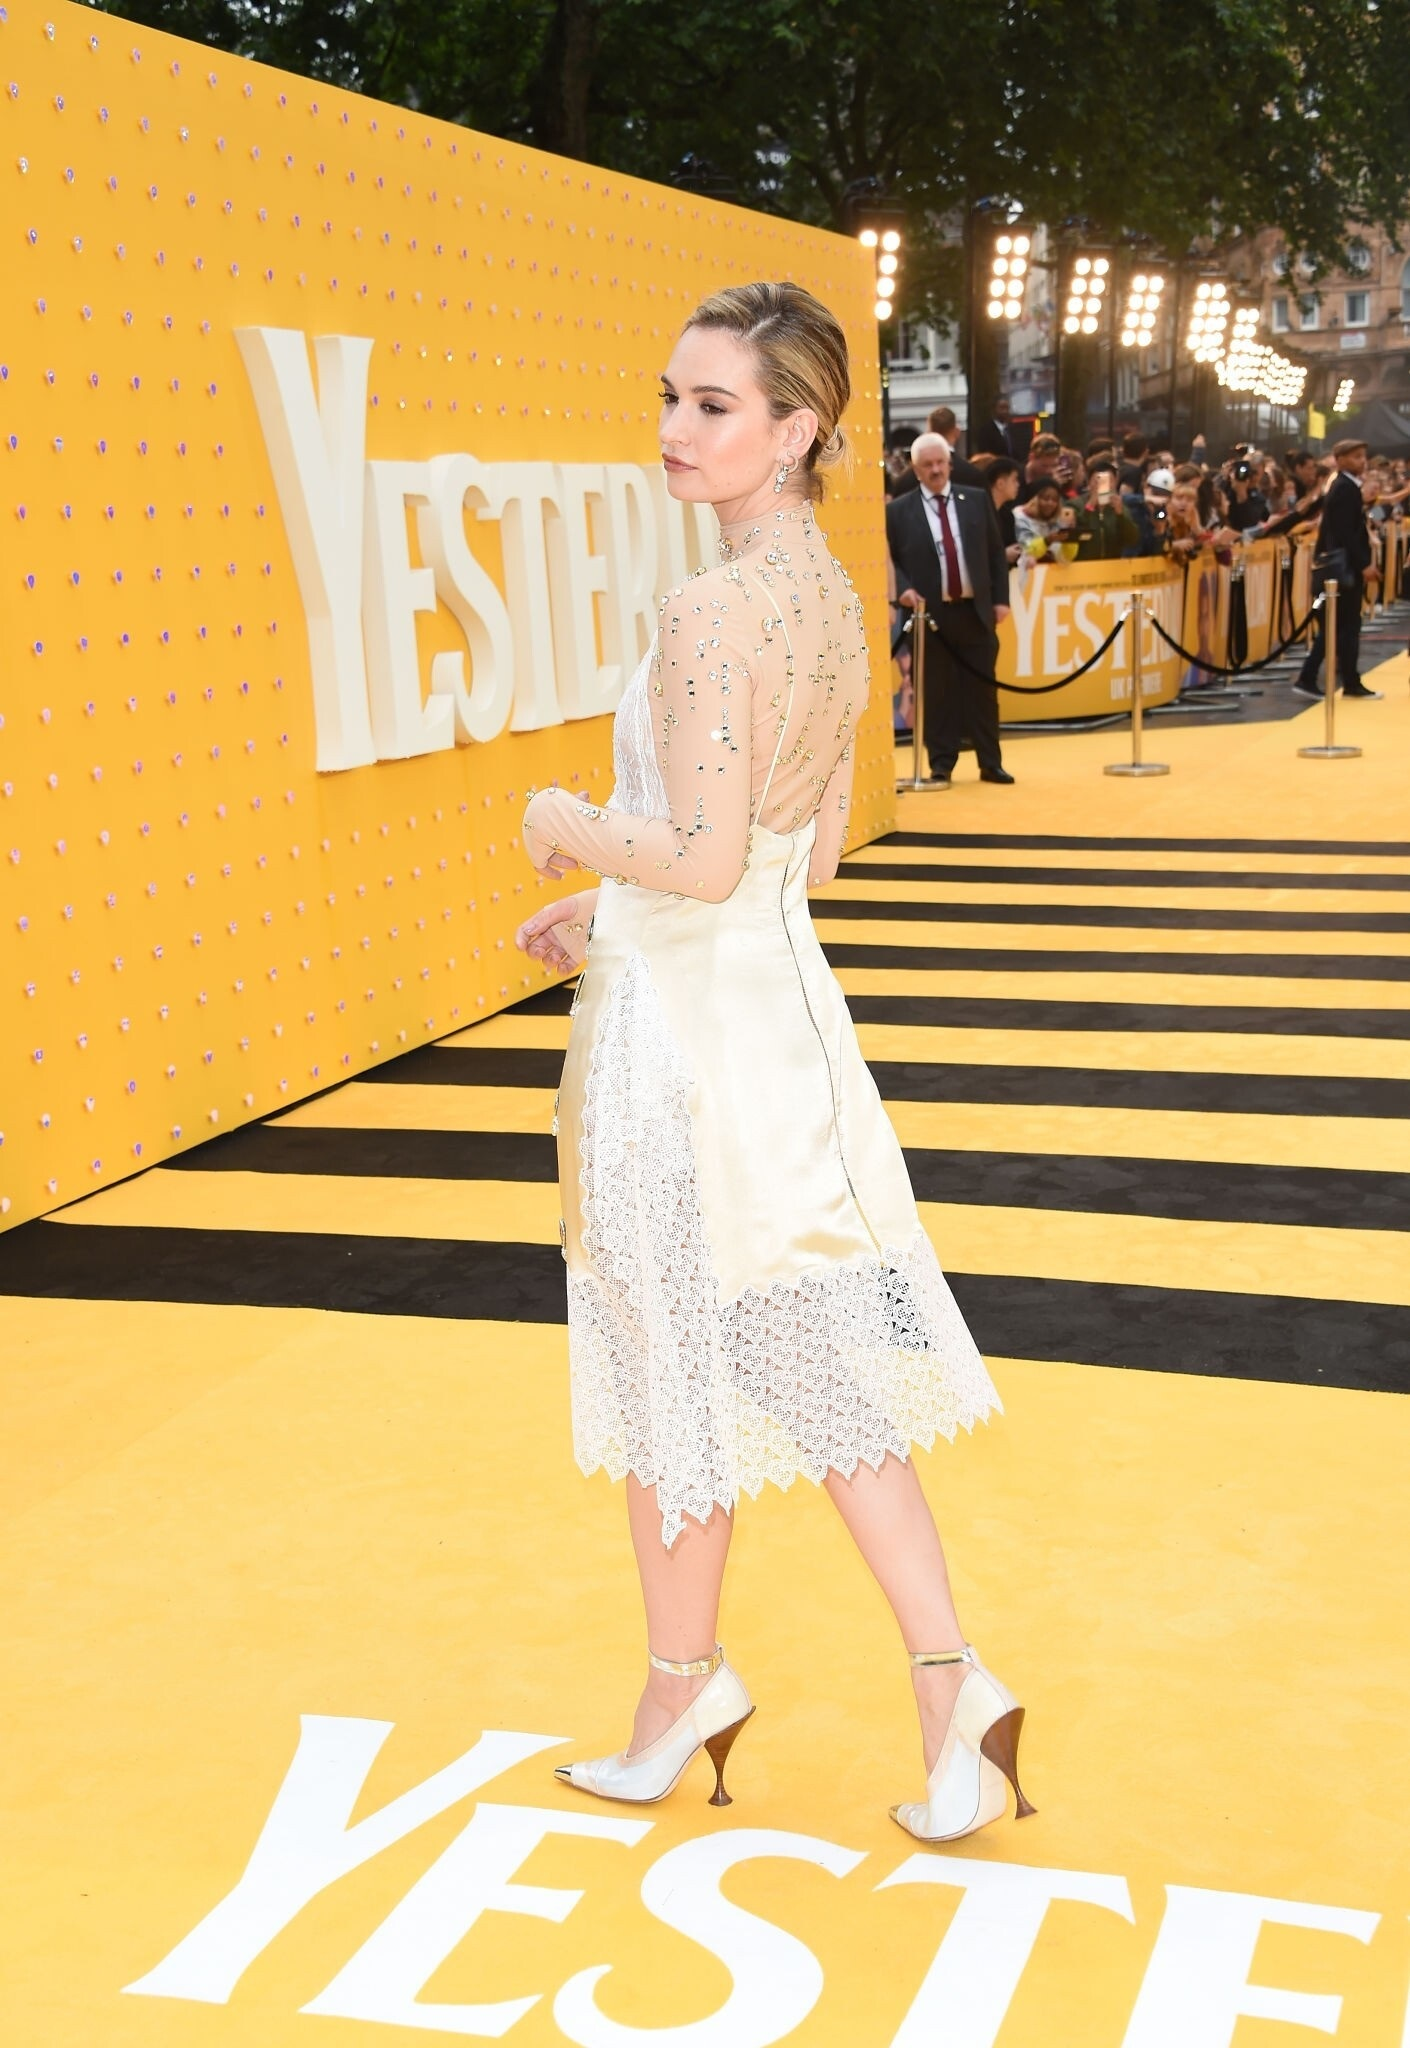 Lily James At The Premiere Of Yesterday In London